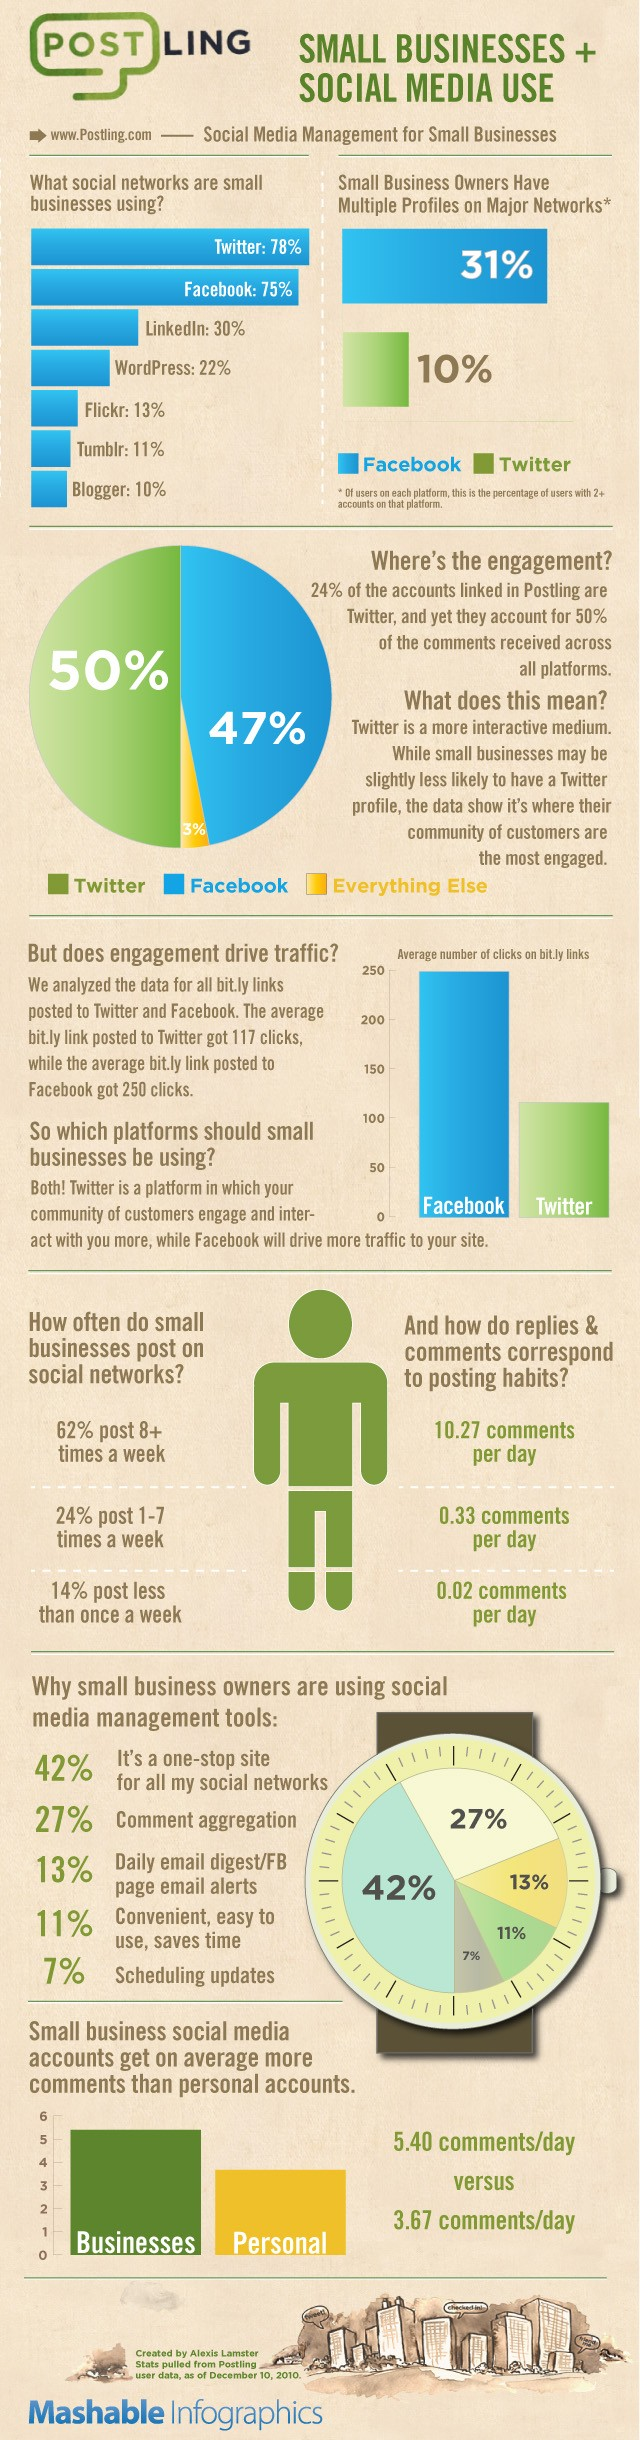 Small Business Needs Social Media #socialmedia